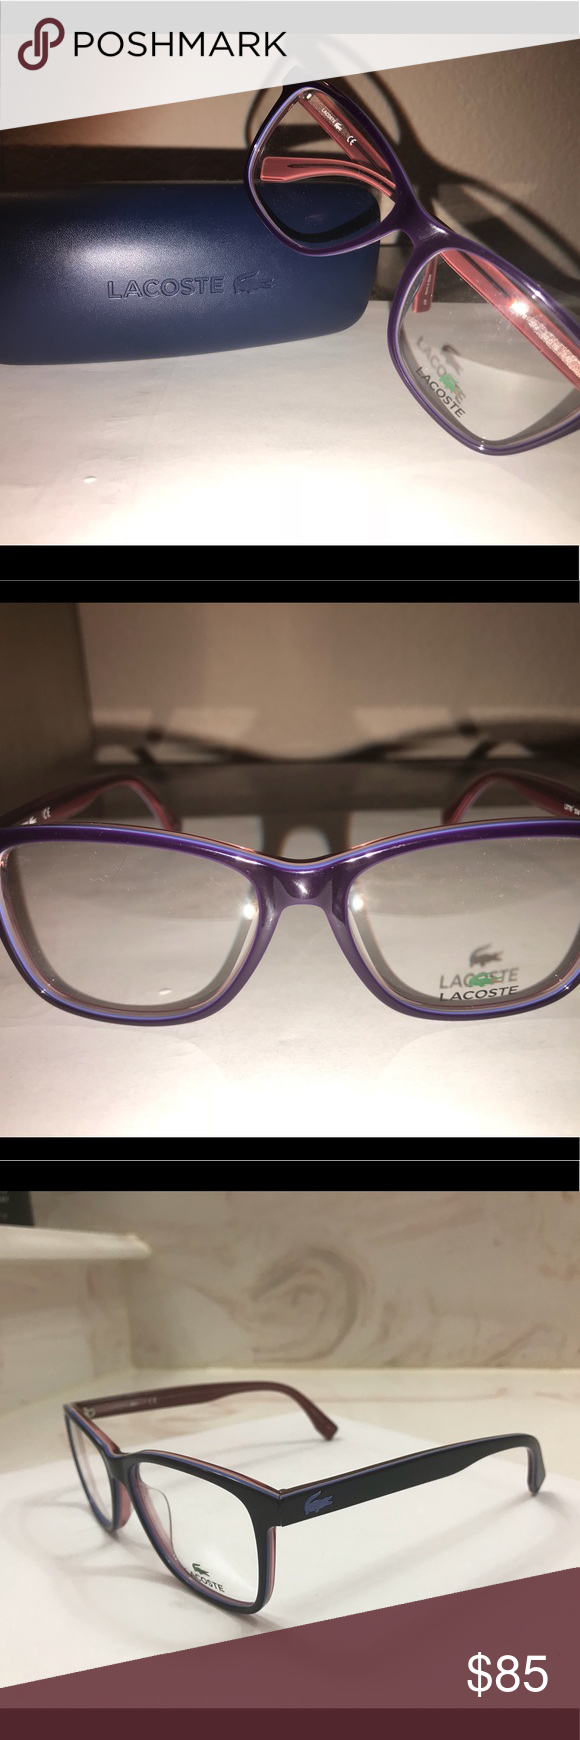 98c30ee20d6 Lacoste Women s Frames Model L2776 Lacoste Women s Brand New Frames With  Box ! Lacoste Accessories Glasses